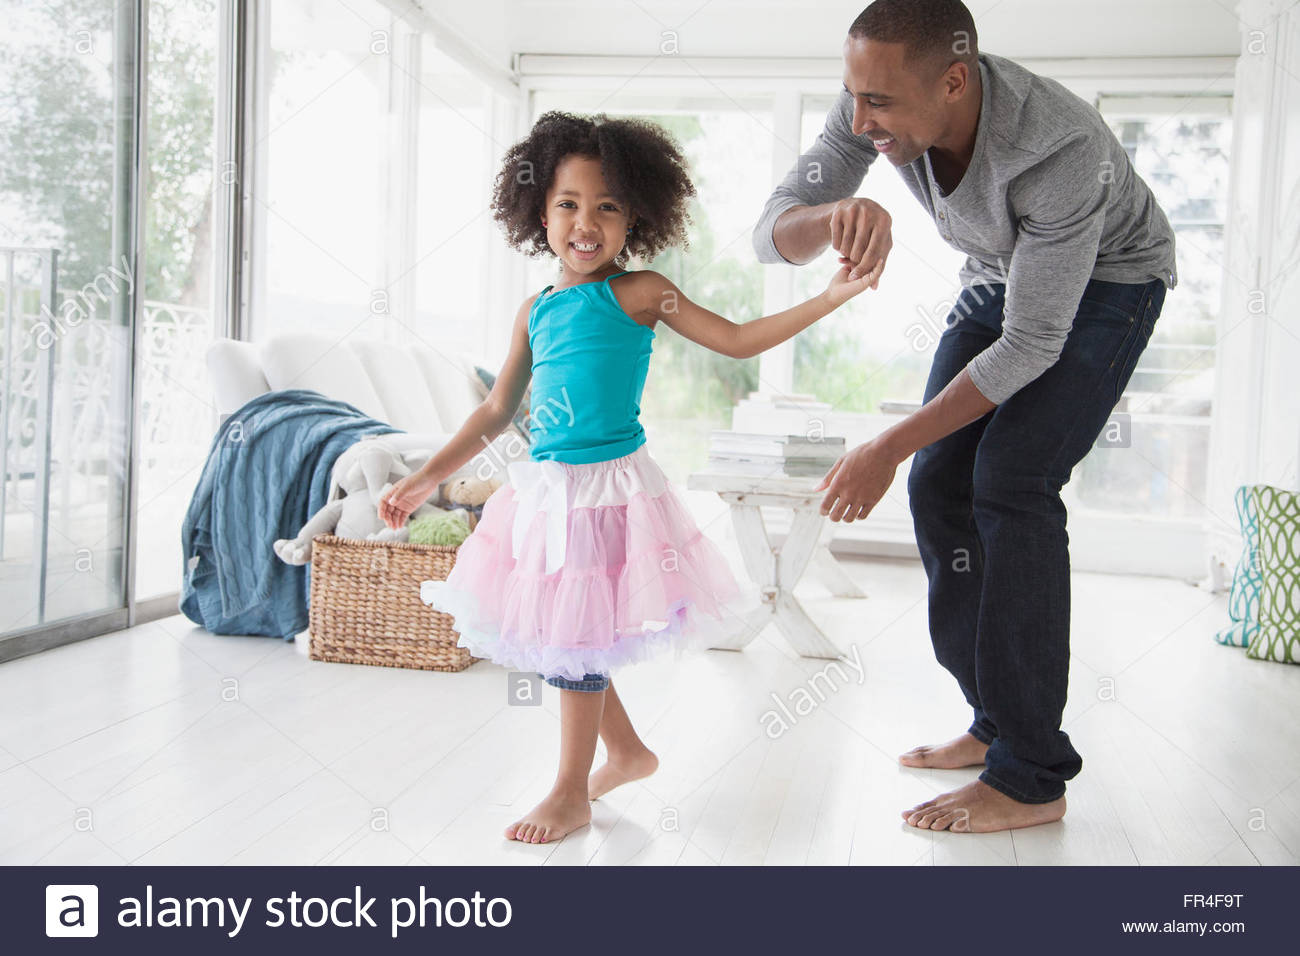 father twirling young daughter in sunroom - Stock Image